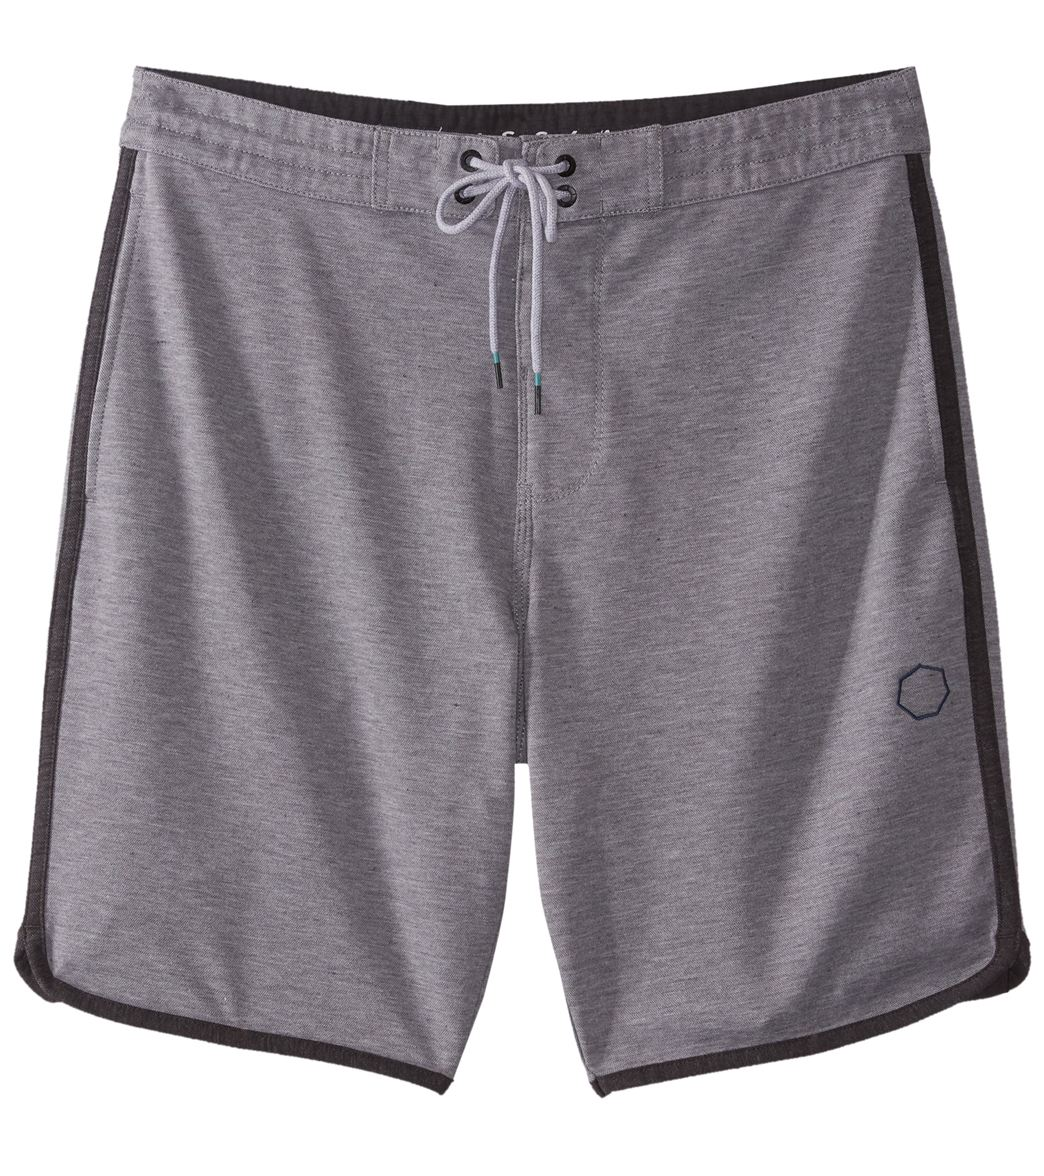 ab25e6bde7 Vissla Men's Sofa Surfer Locker Fleece Short